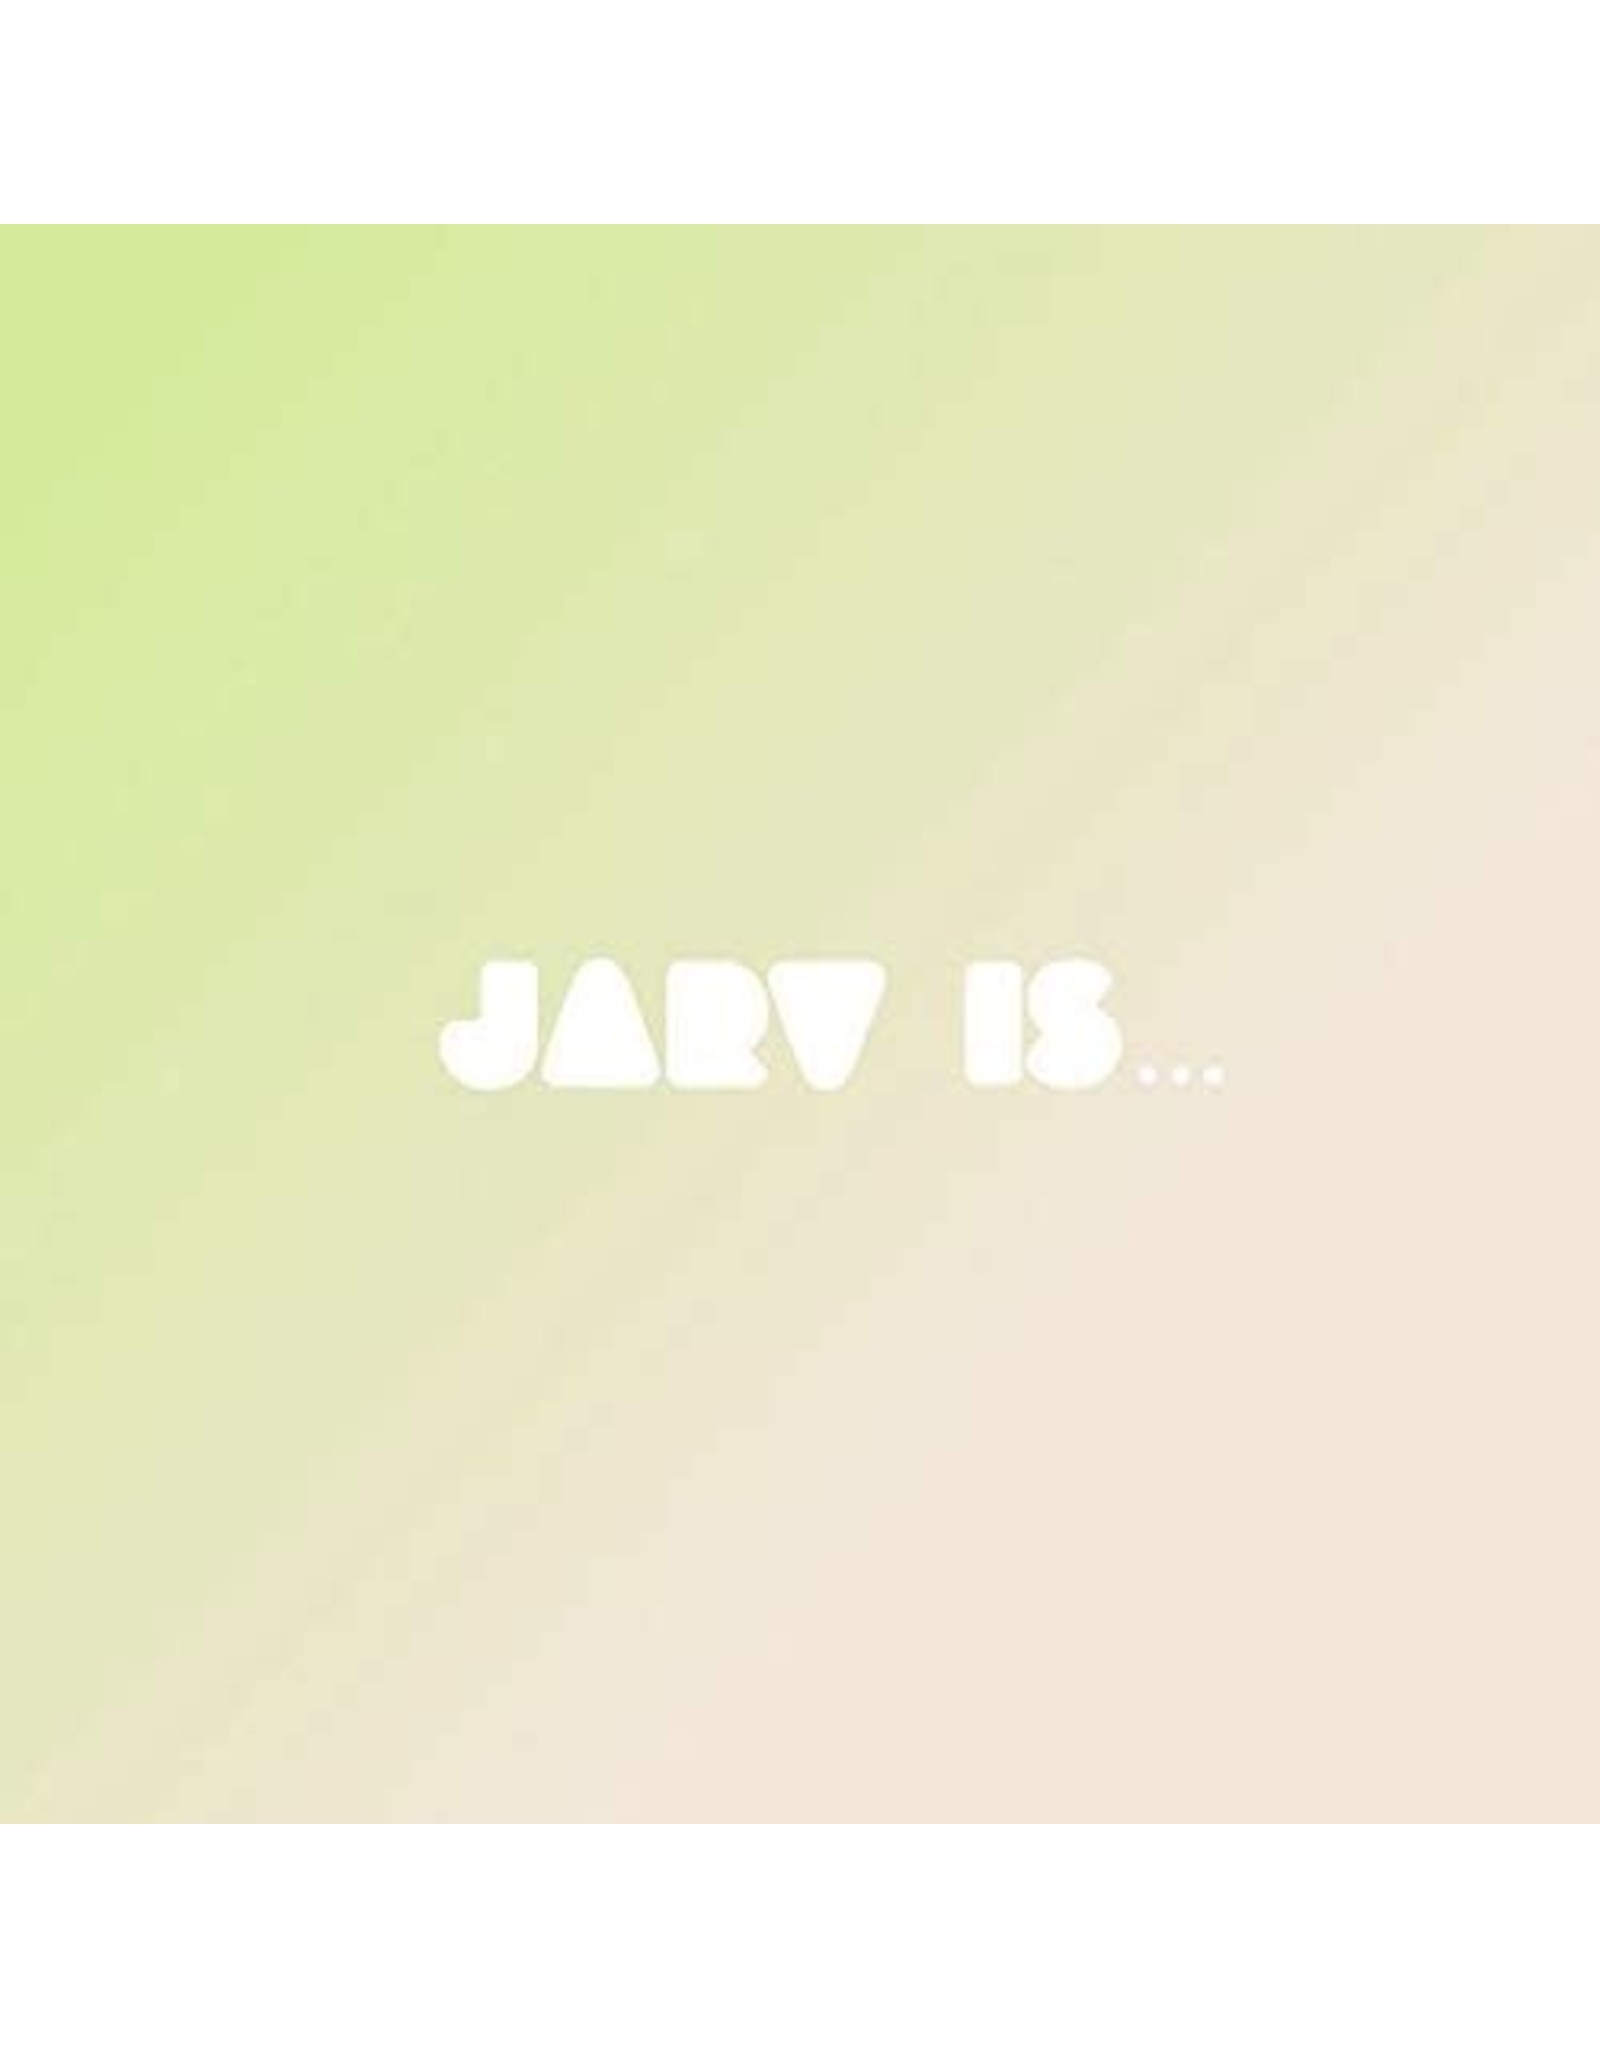 JARV IS - Beyond the Pale (Exclusive Clear Orange Vinyl)